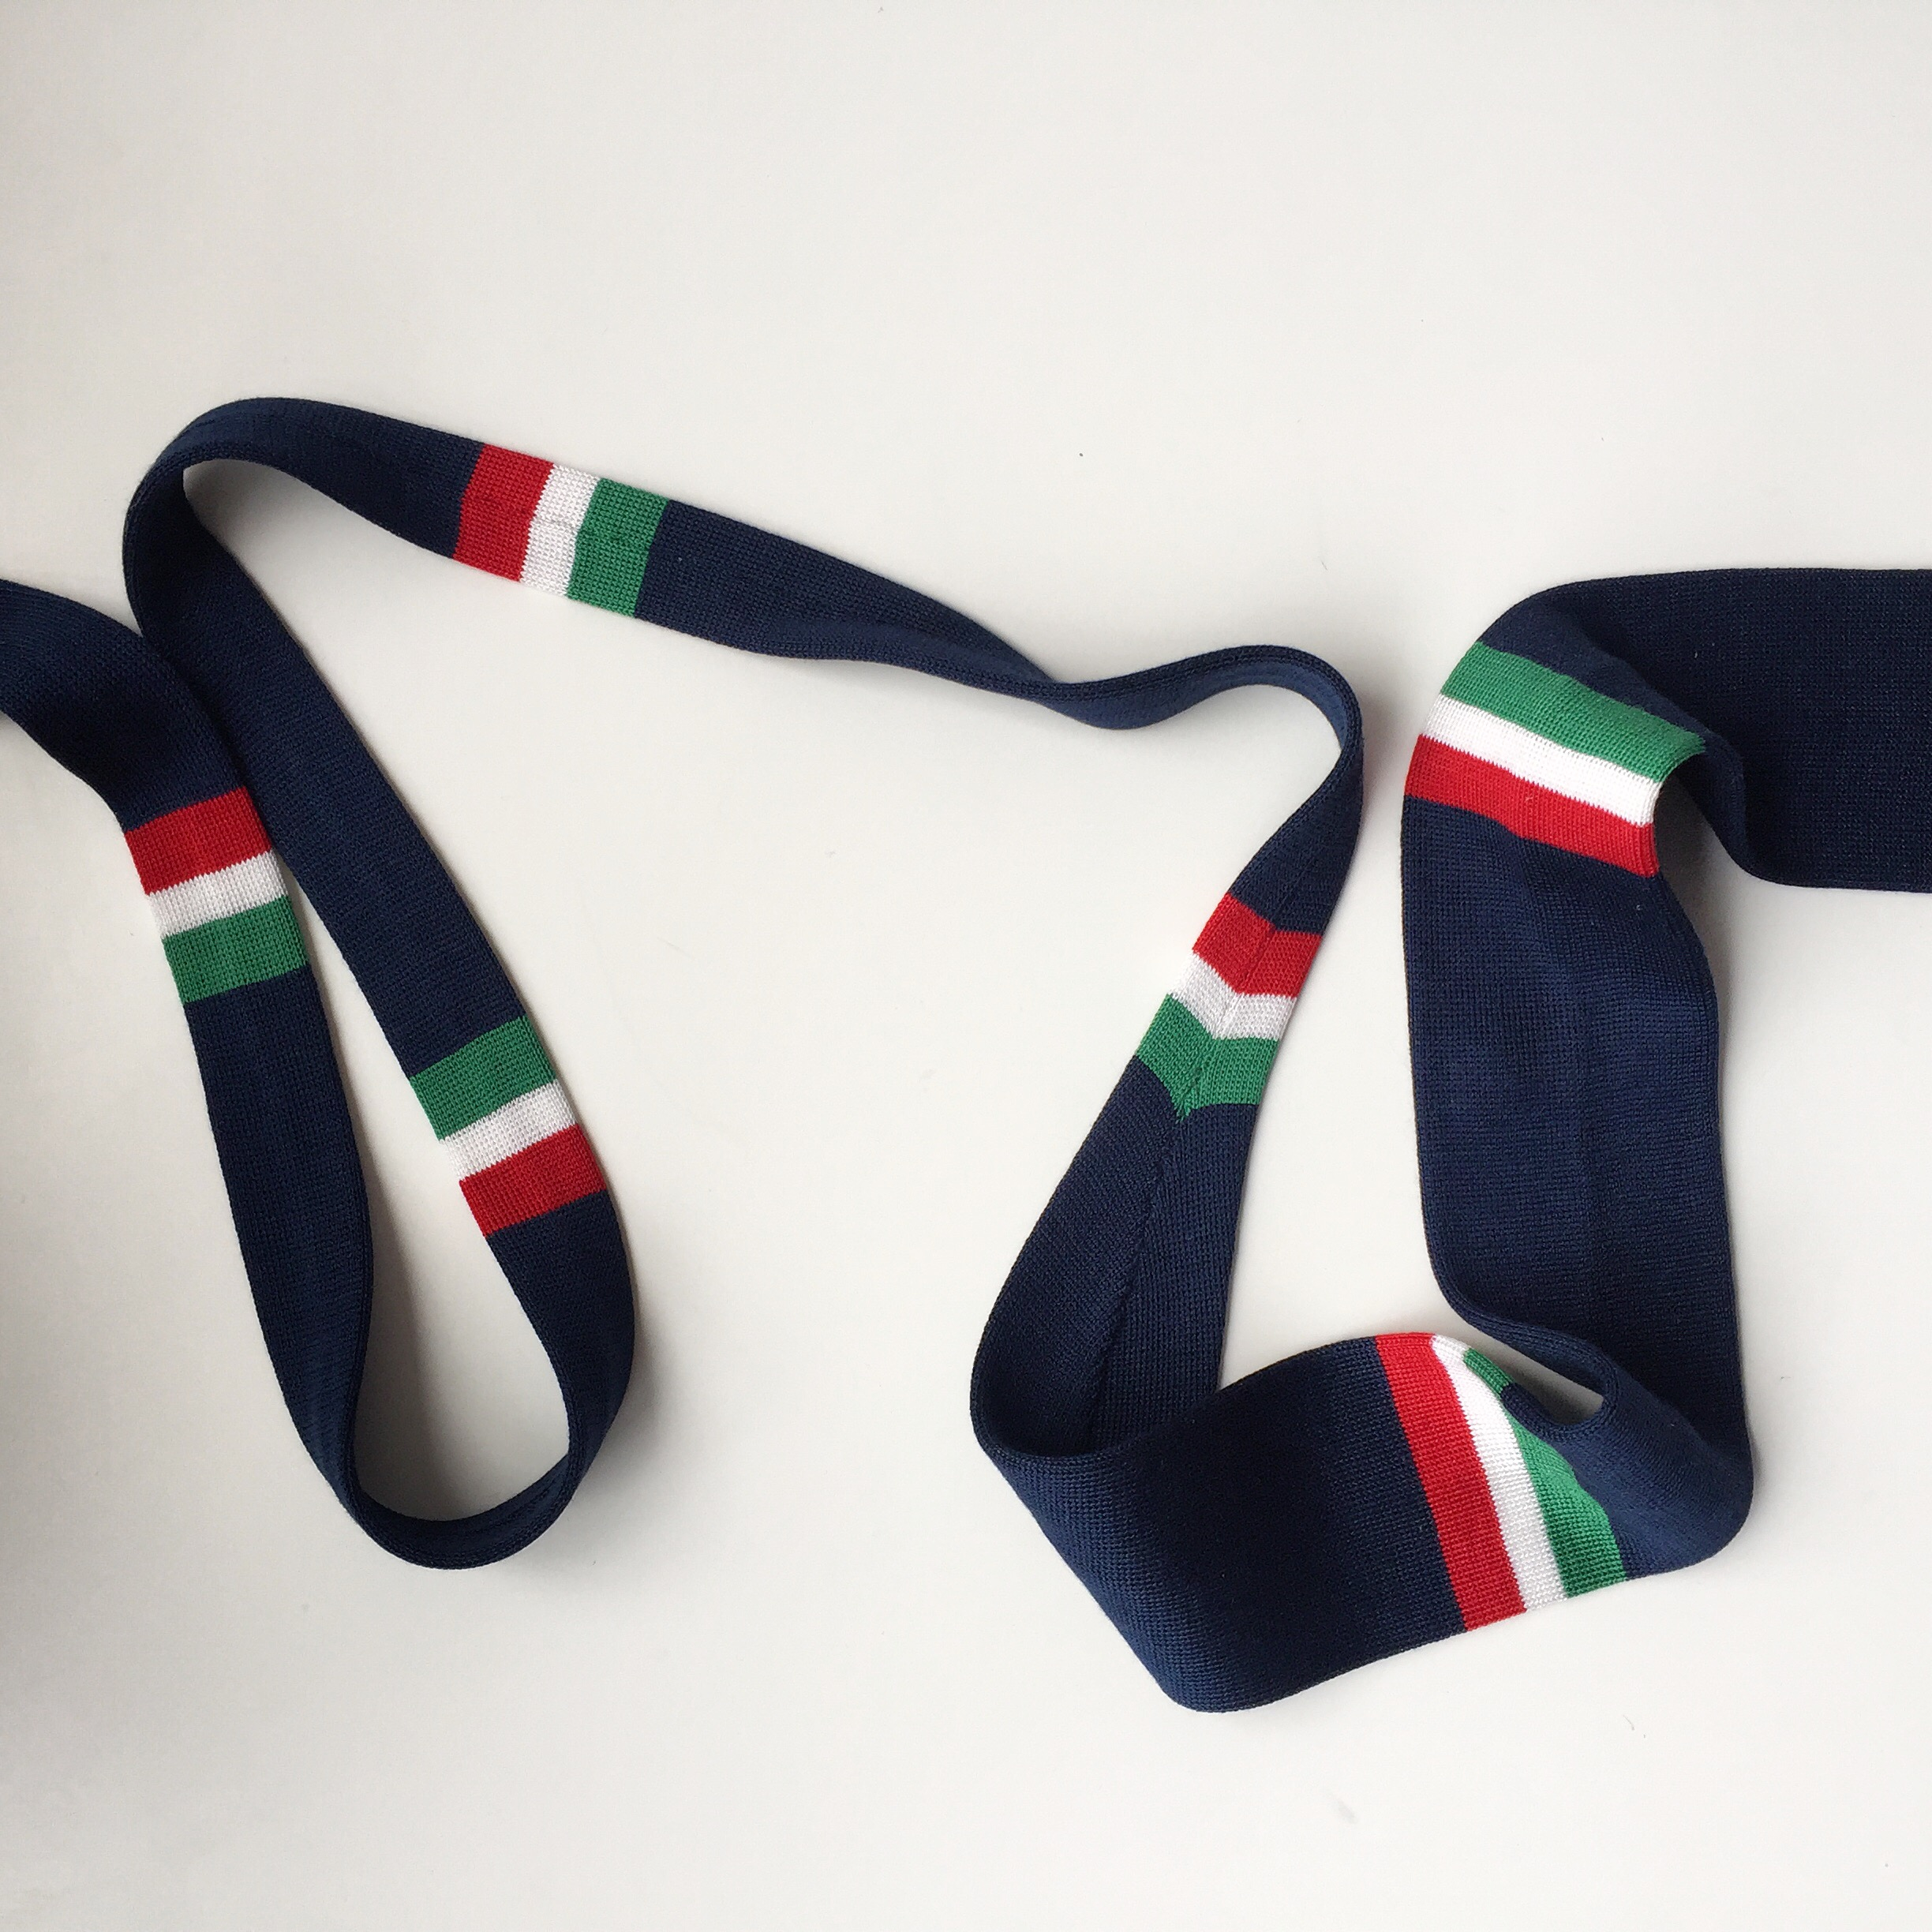 Bespoke silk tie for a client to reflect his career in the Merchant Navy,